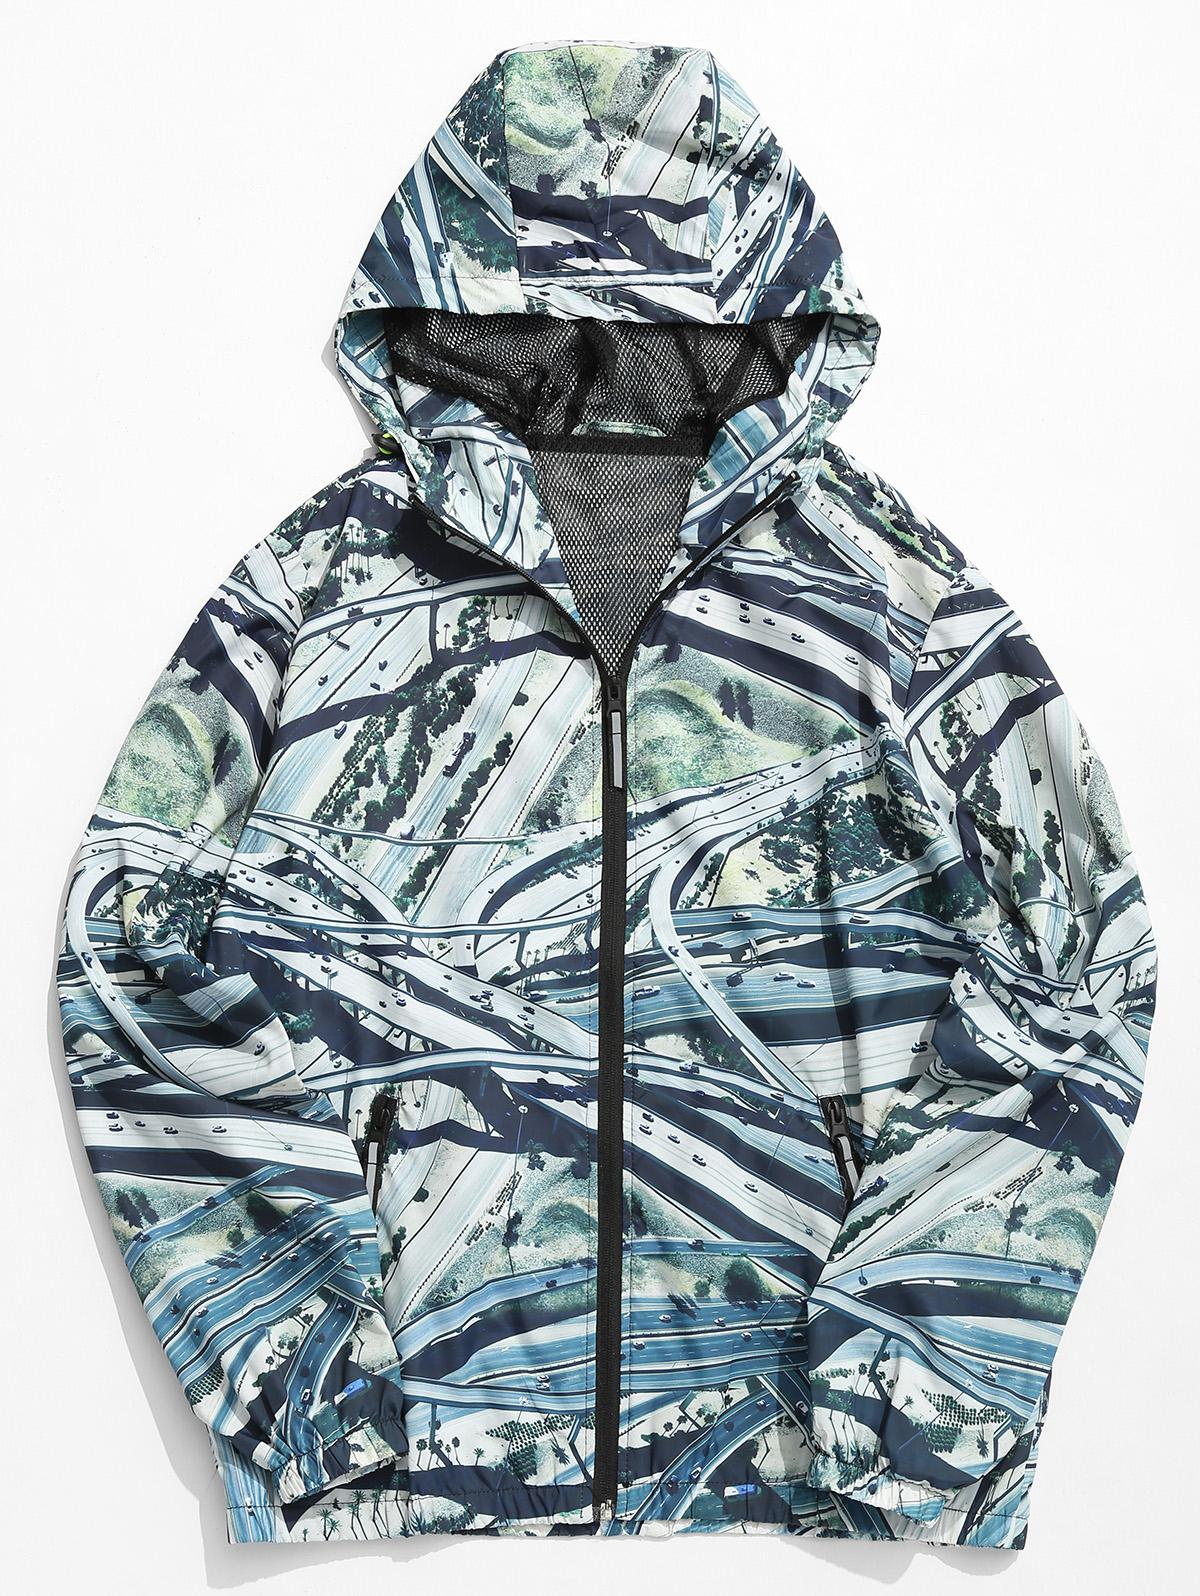 Overpass Highway Print Lightweight Jacket